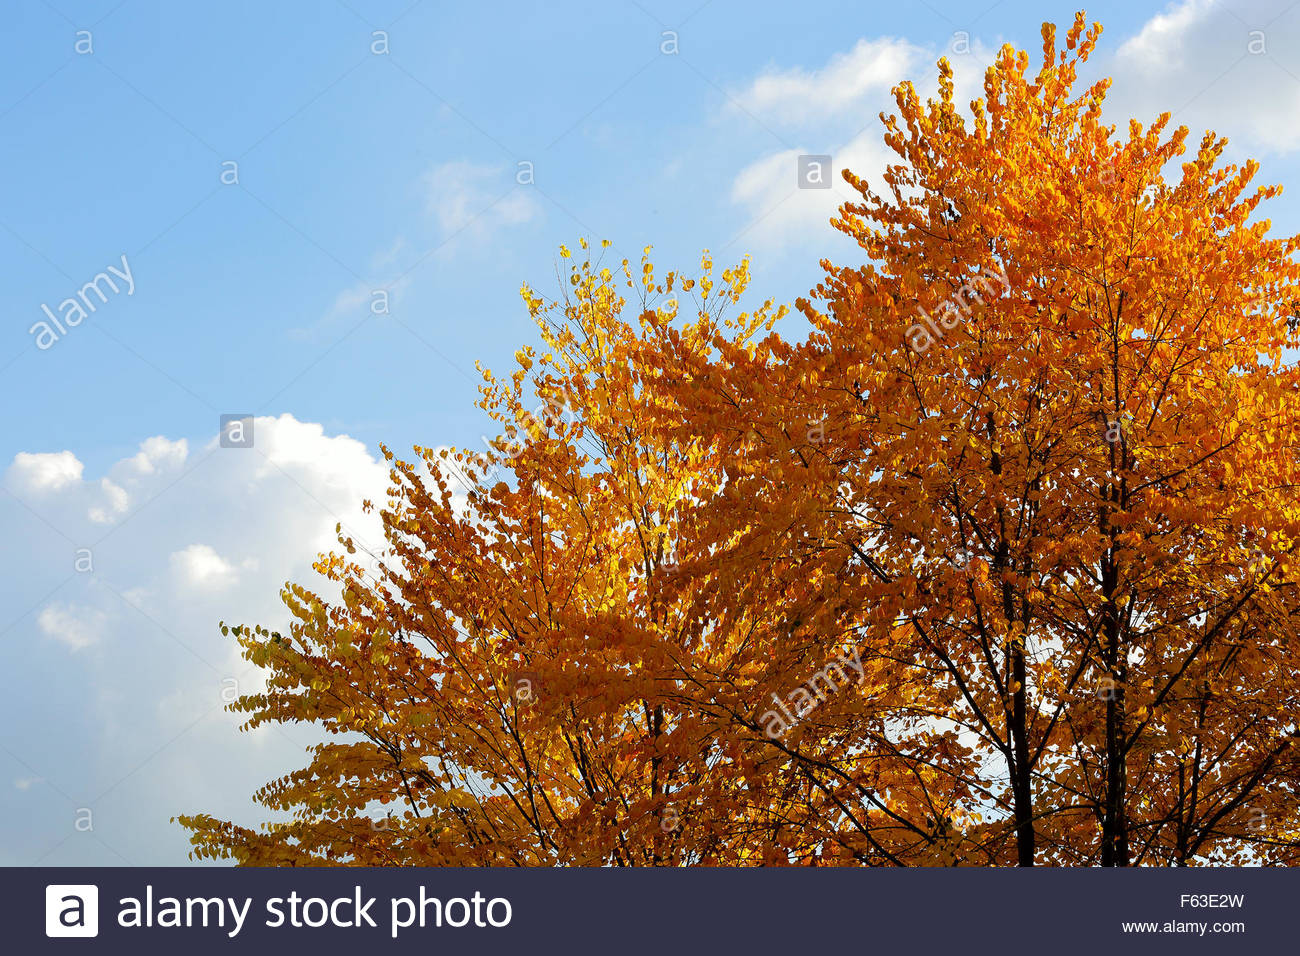 Trees in the Surrey Hills changing colour in the early autumn - Stock Image